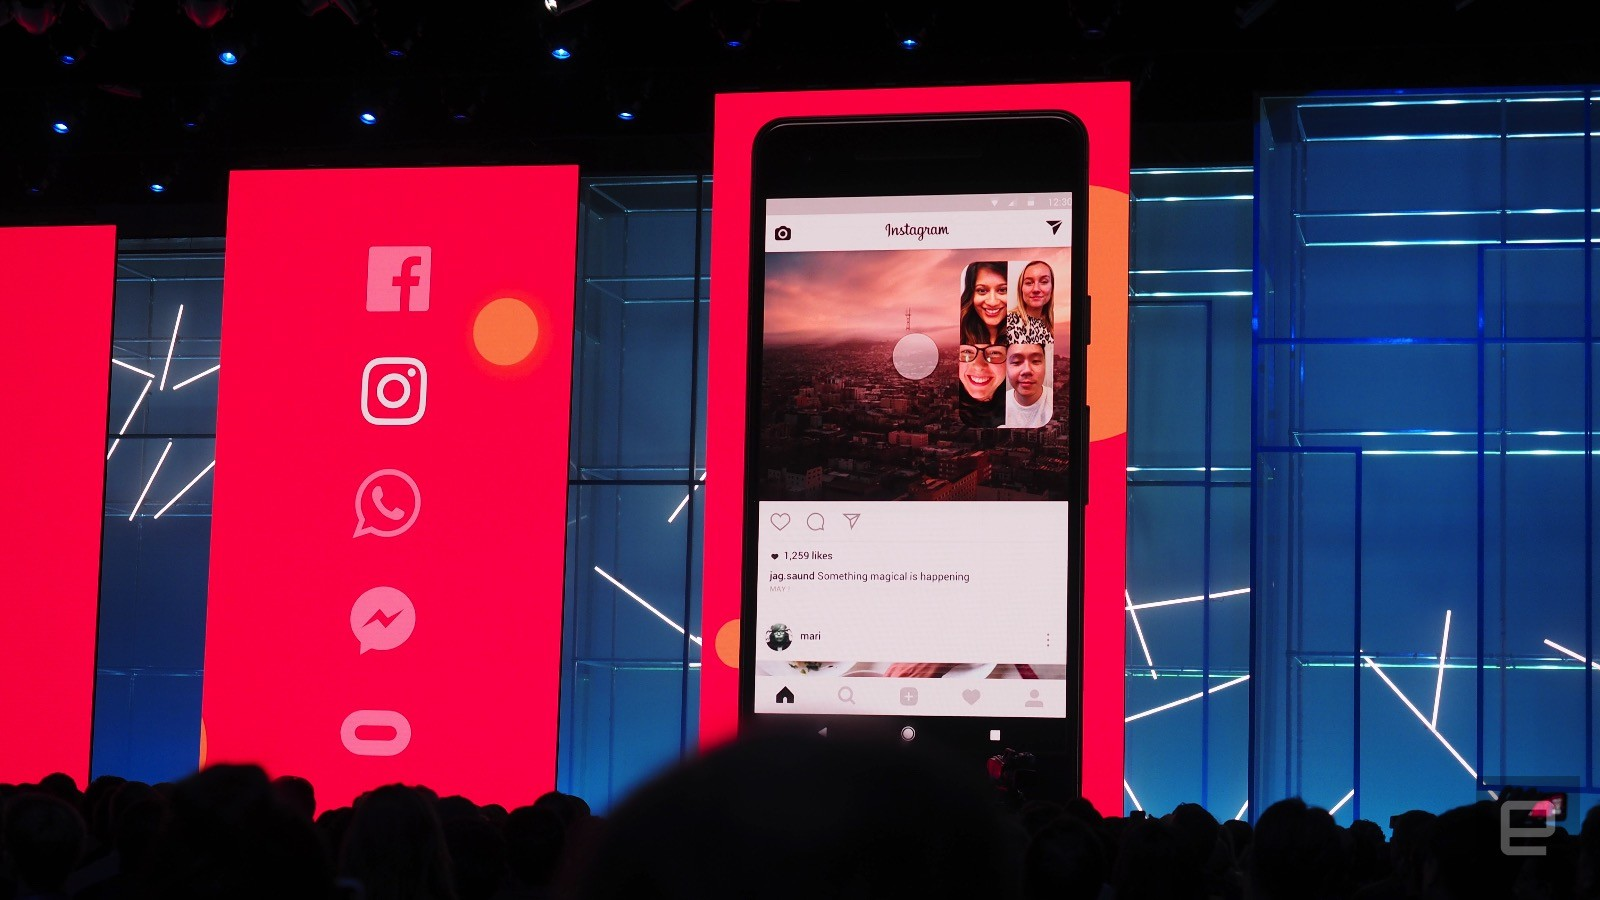 Video Calls Come To Instagram